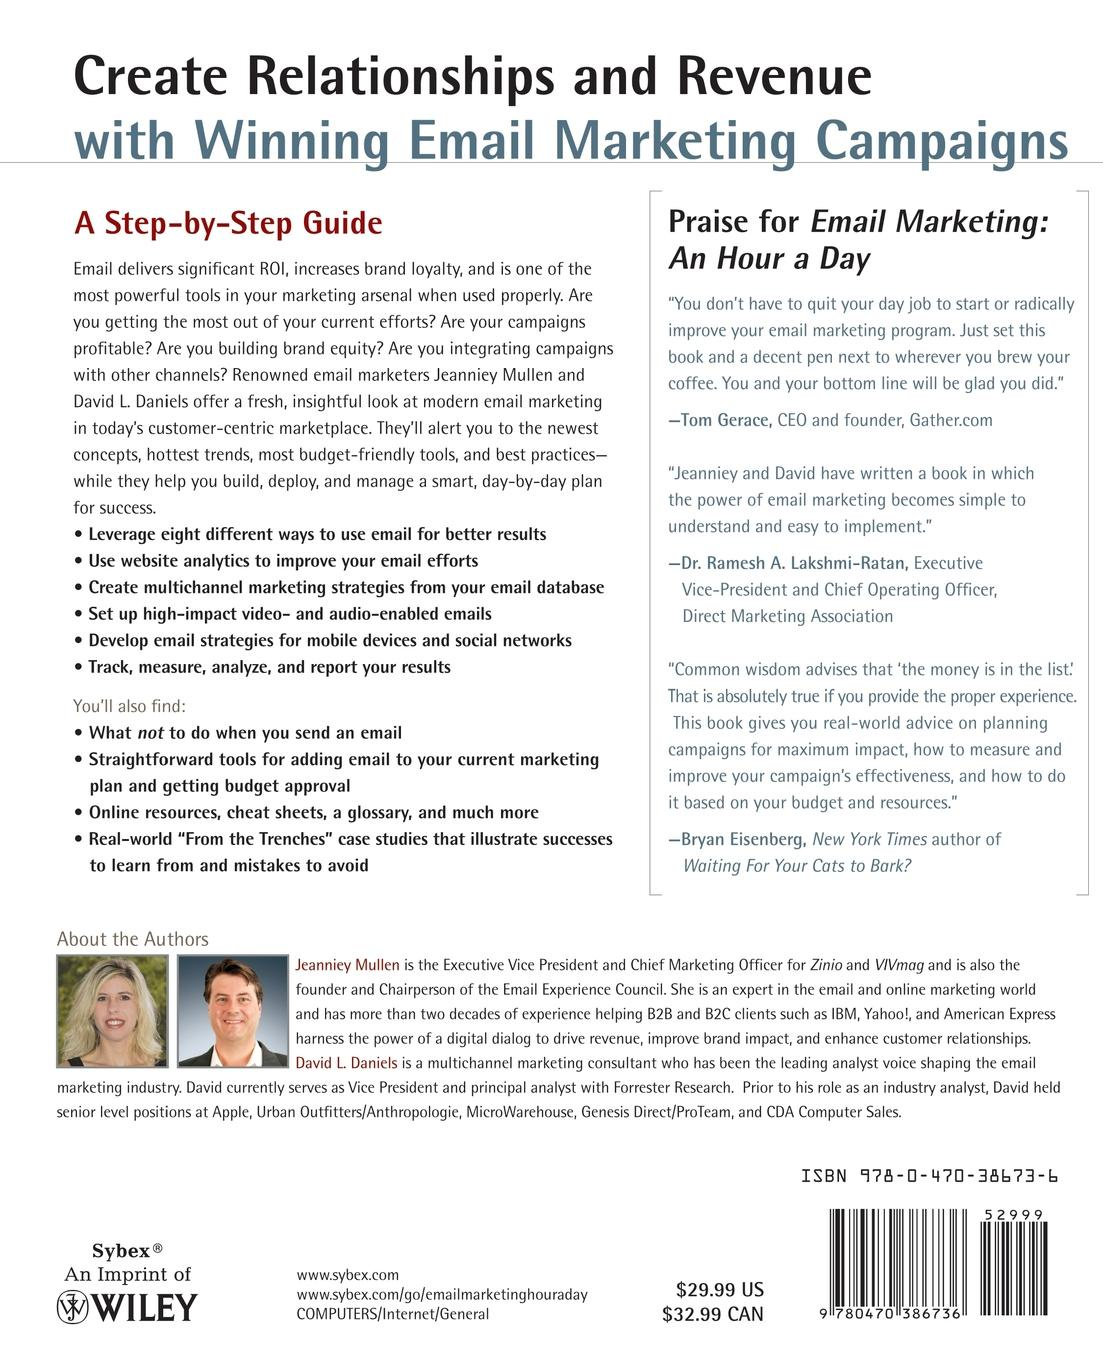 Jeanniey Mullen, David Daniels Email Marketing. An Hour a Day usb rechargeable bluetooth stereo handsfree headset 6 hour talk 90 hour standby